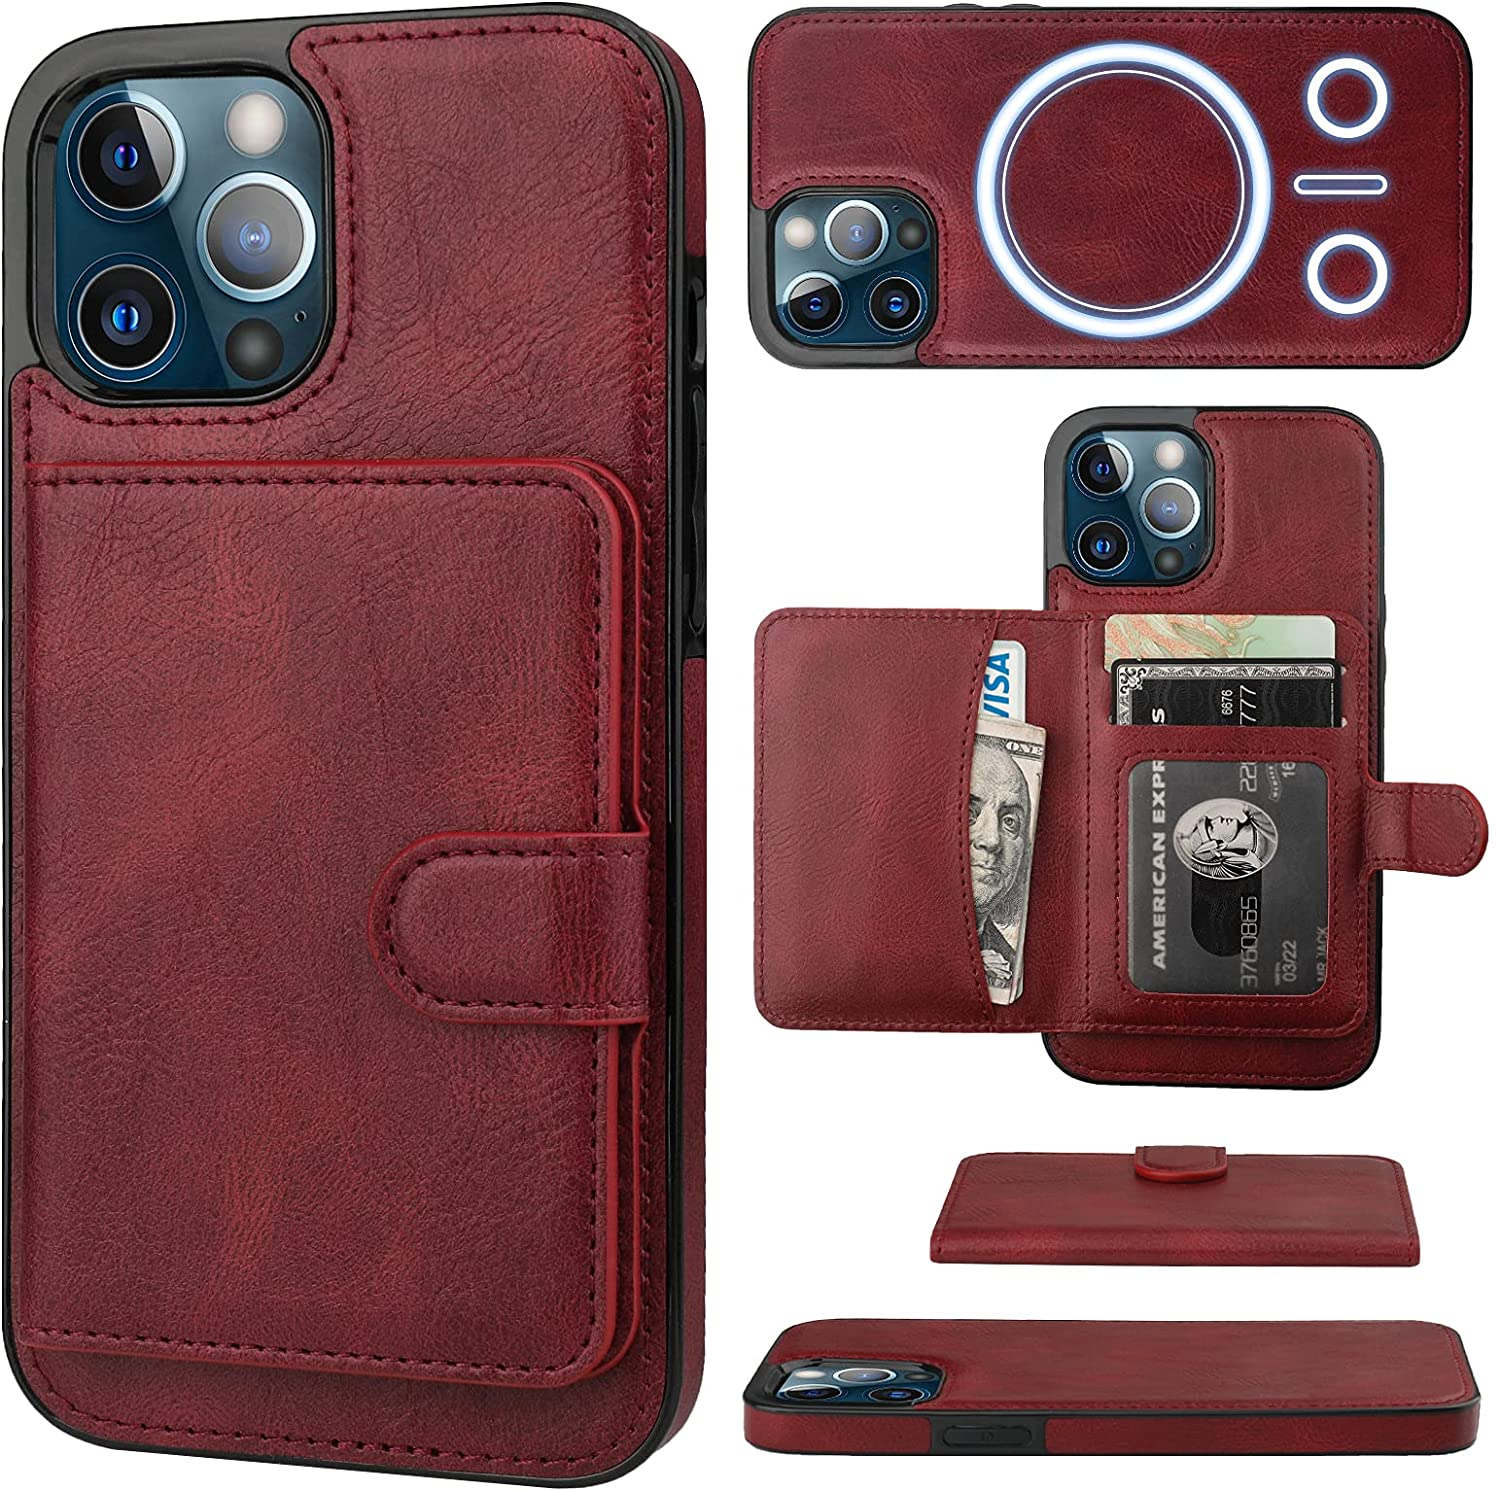 Bocasal Wallet Case for iPhone 12 Pro Max Compatible with MagSafe Magnetic RFID Blocking Detachable Premium PU Leather Flip Case with Card Slots Holder Kickstand Wireless Charging 6.7 Inch (Wine Red)